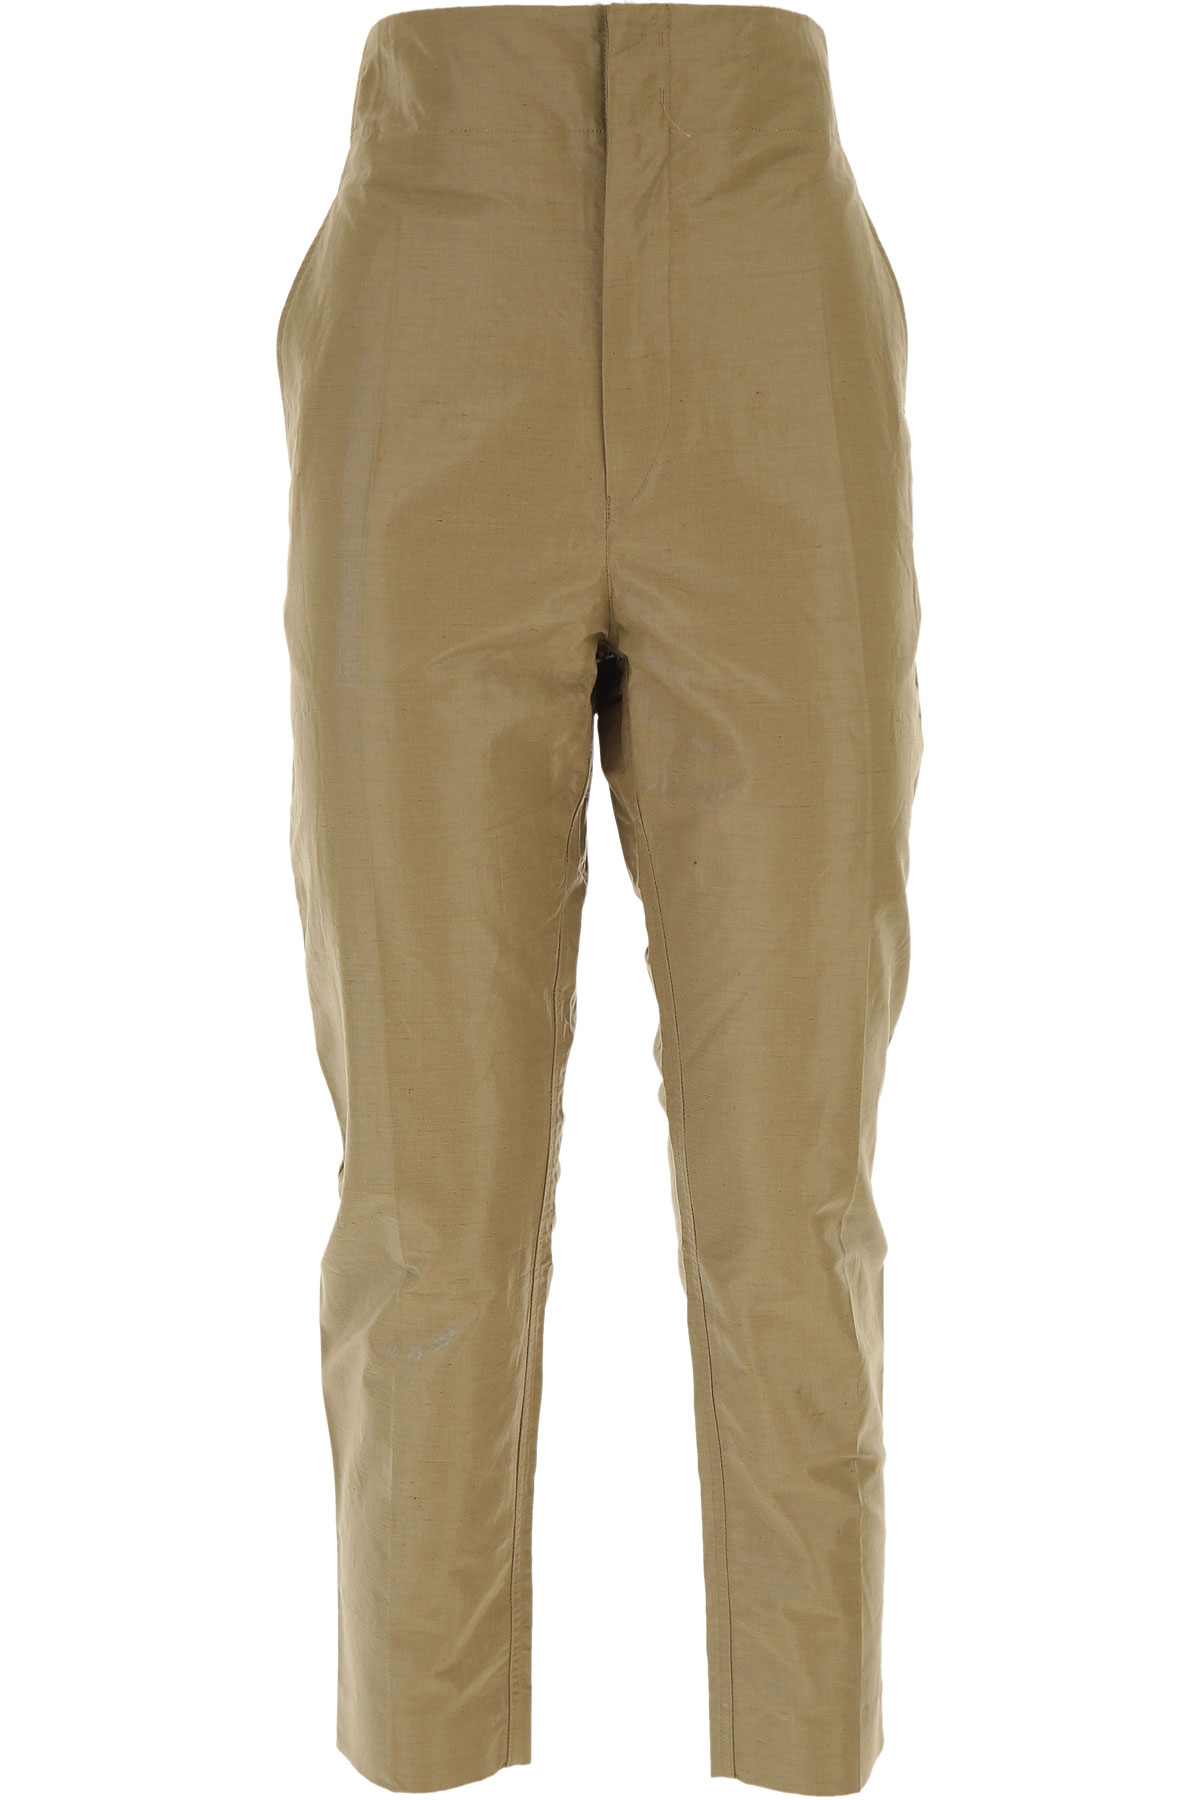 Isabel Marant Pants for Women On Sale in Outlet, Dark Khaki, Cotton, 2019, 4 6